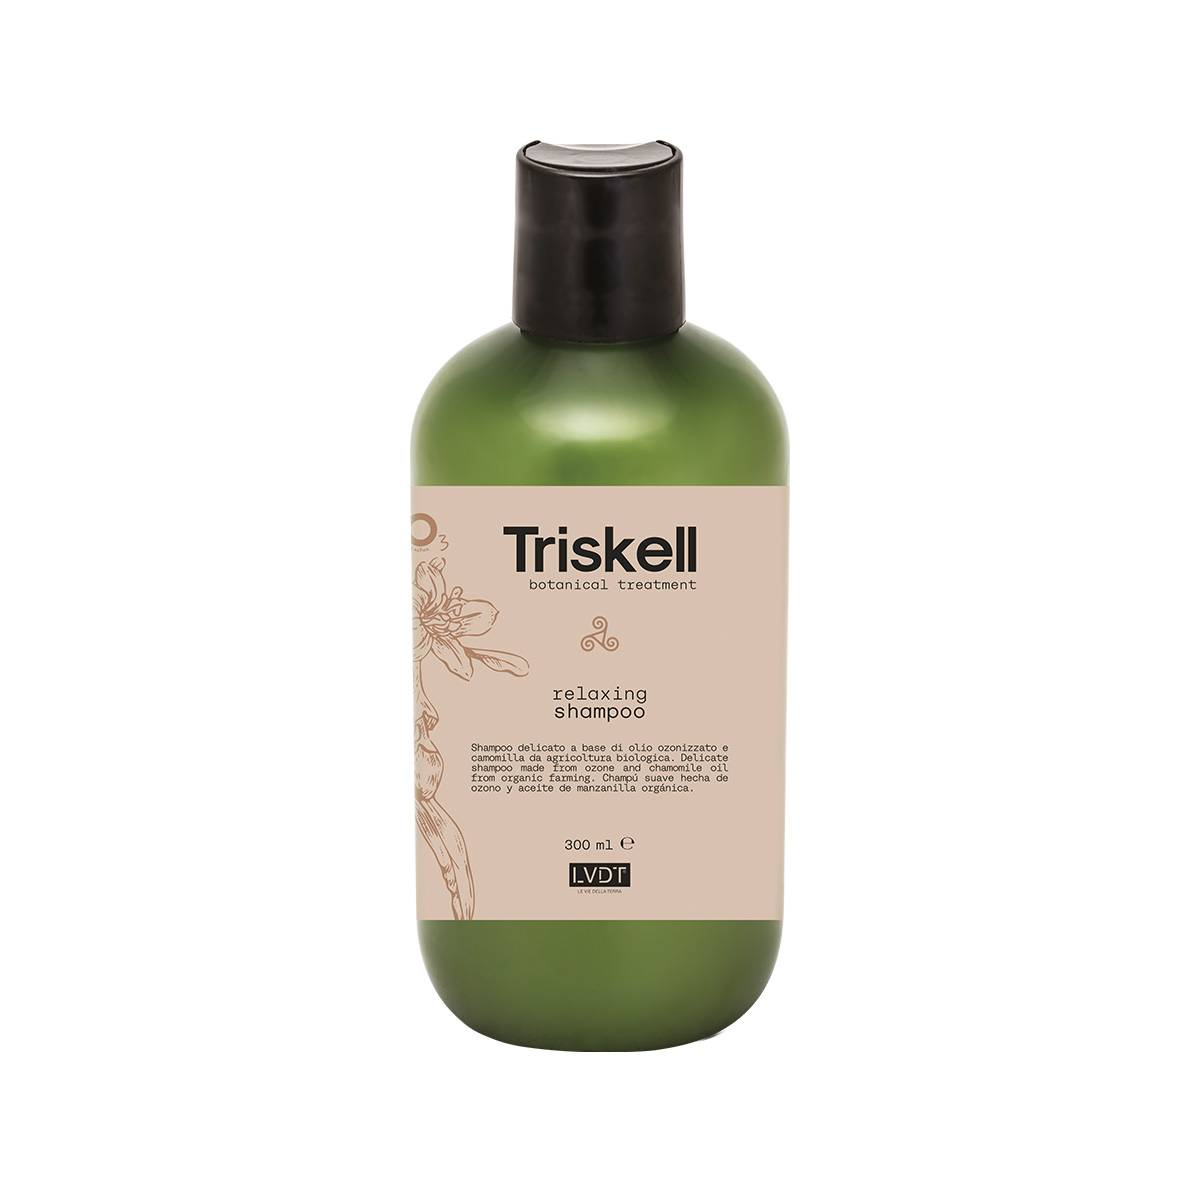 Relaxing Shampoo 300 Ml New Triskell Nuova Botanical Treatment